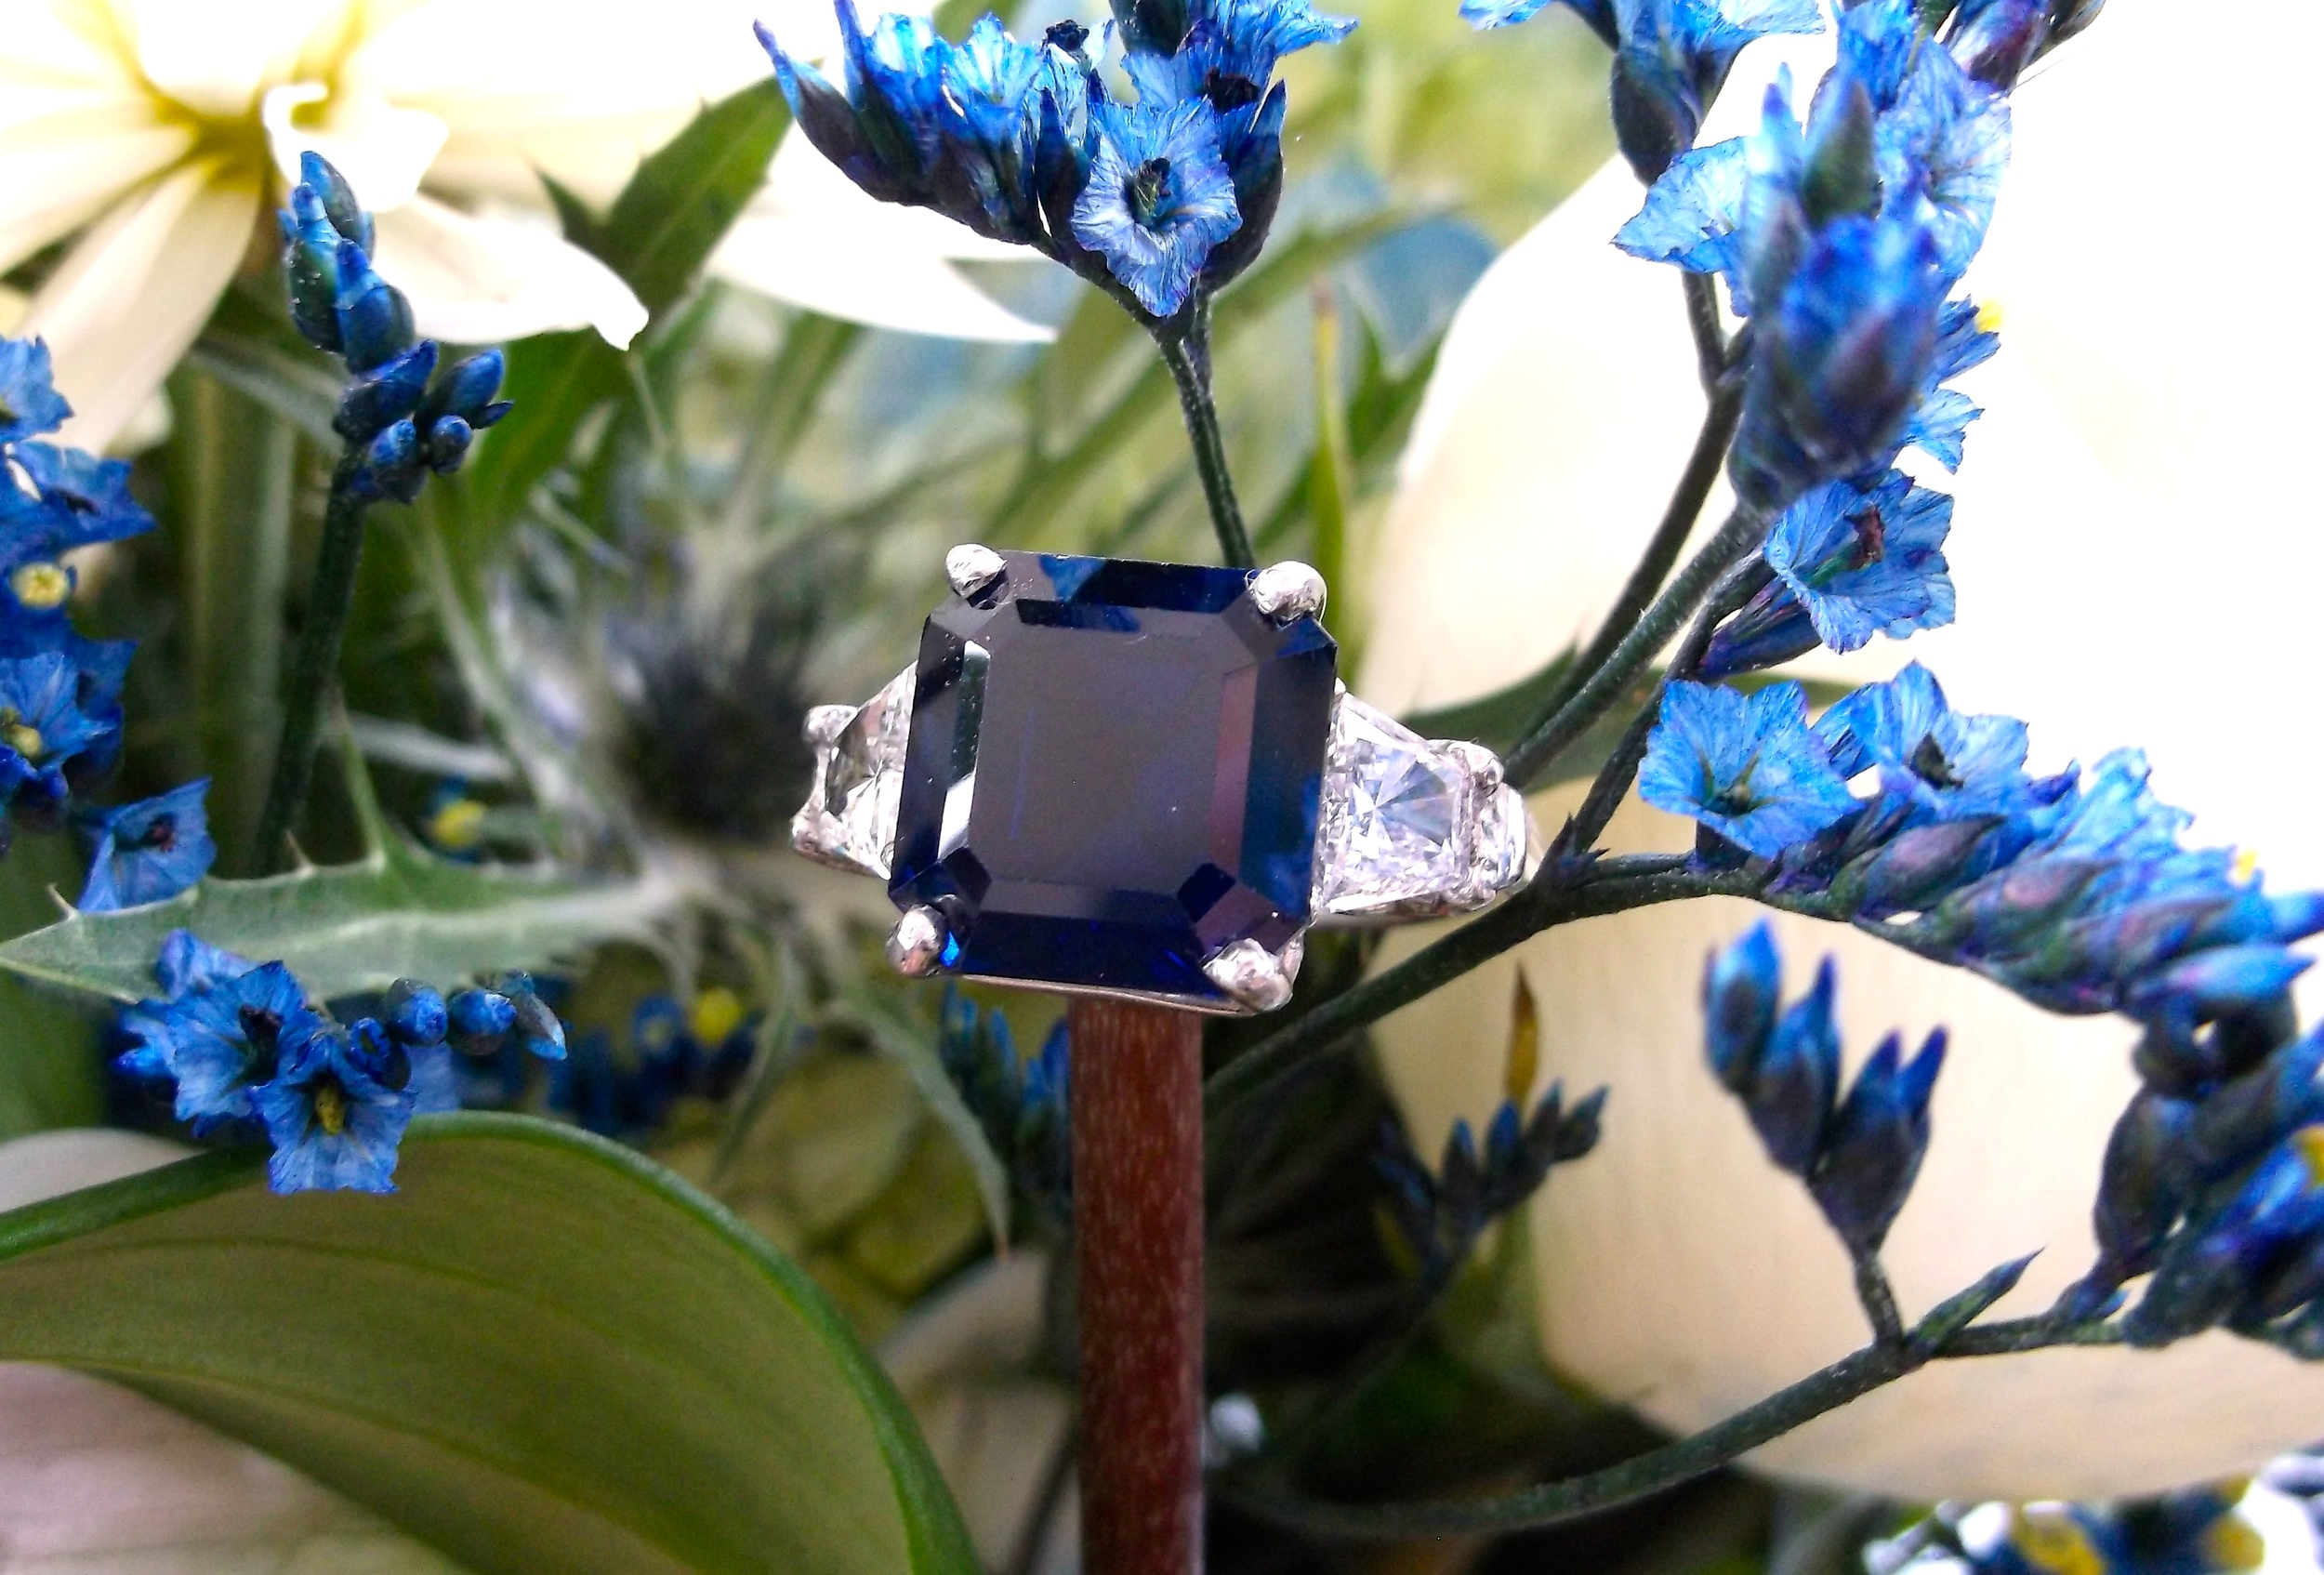 SOLD - Jaw dropping 8.50 carat sapphire set in platinum with 1.40 carats total weight in trapezoid and baguette diamonds on each side.